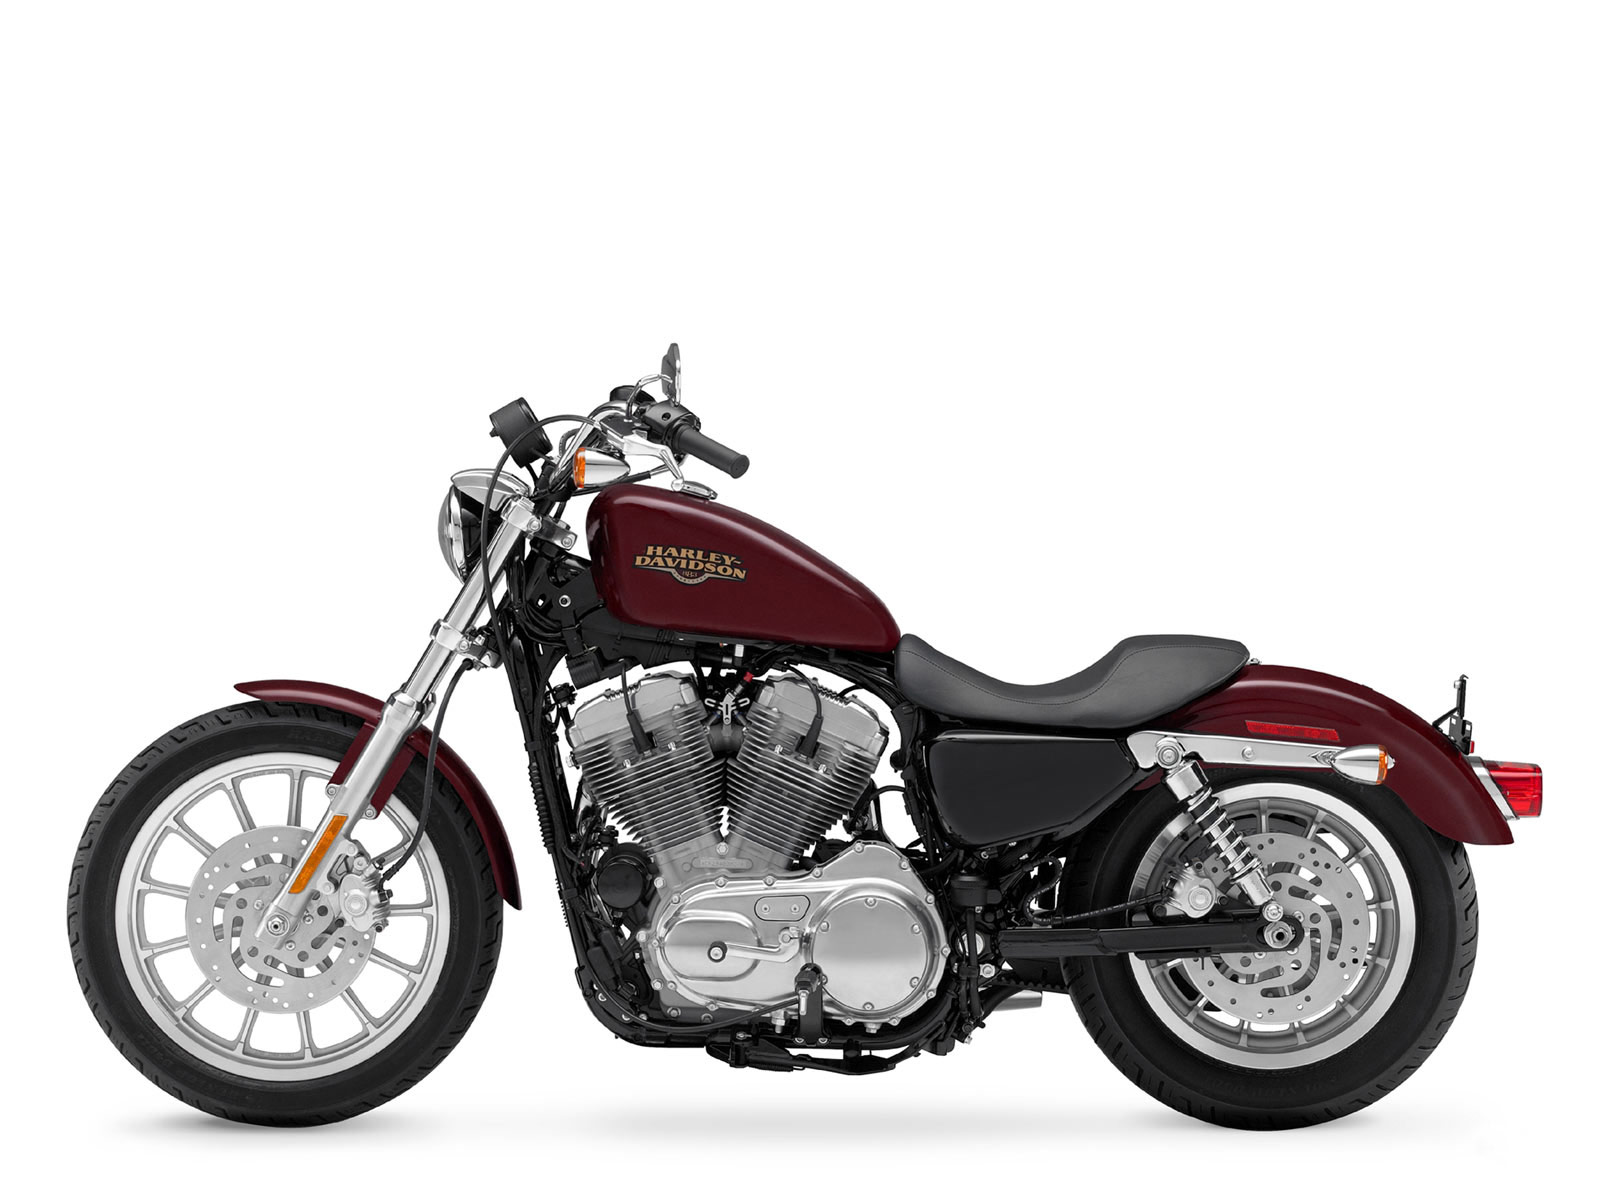 2009 Harley-Davidson Sportster Iron 883. The 2009 Harley-Davidson Sportster  Iron 883 was created by combining features from both the Nightster 1200 and  the ...